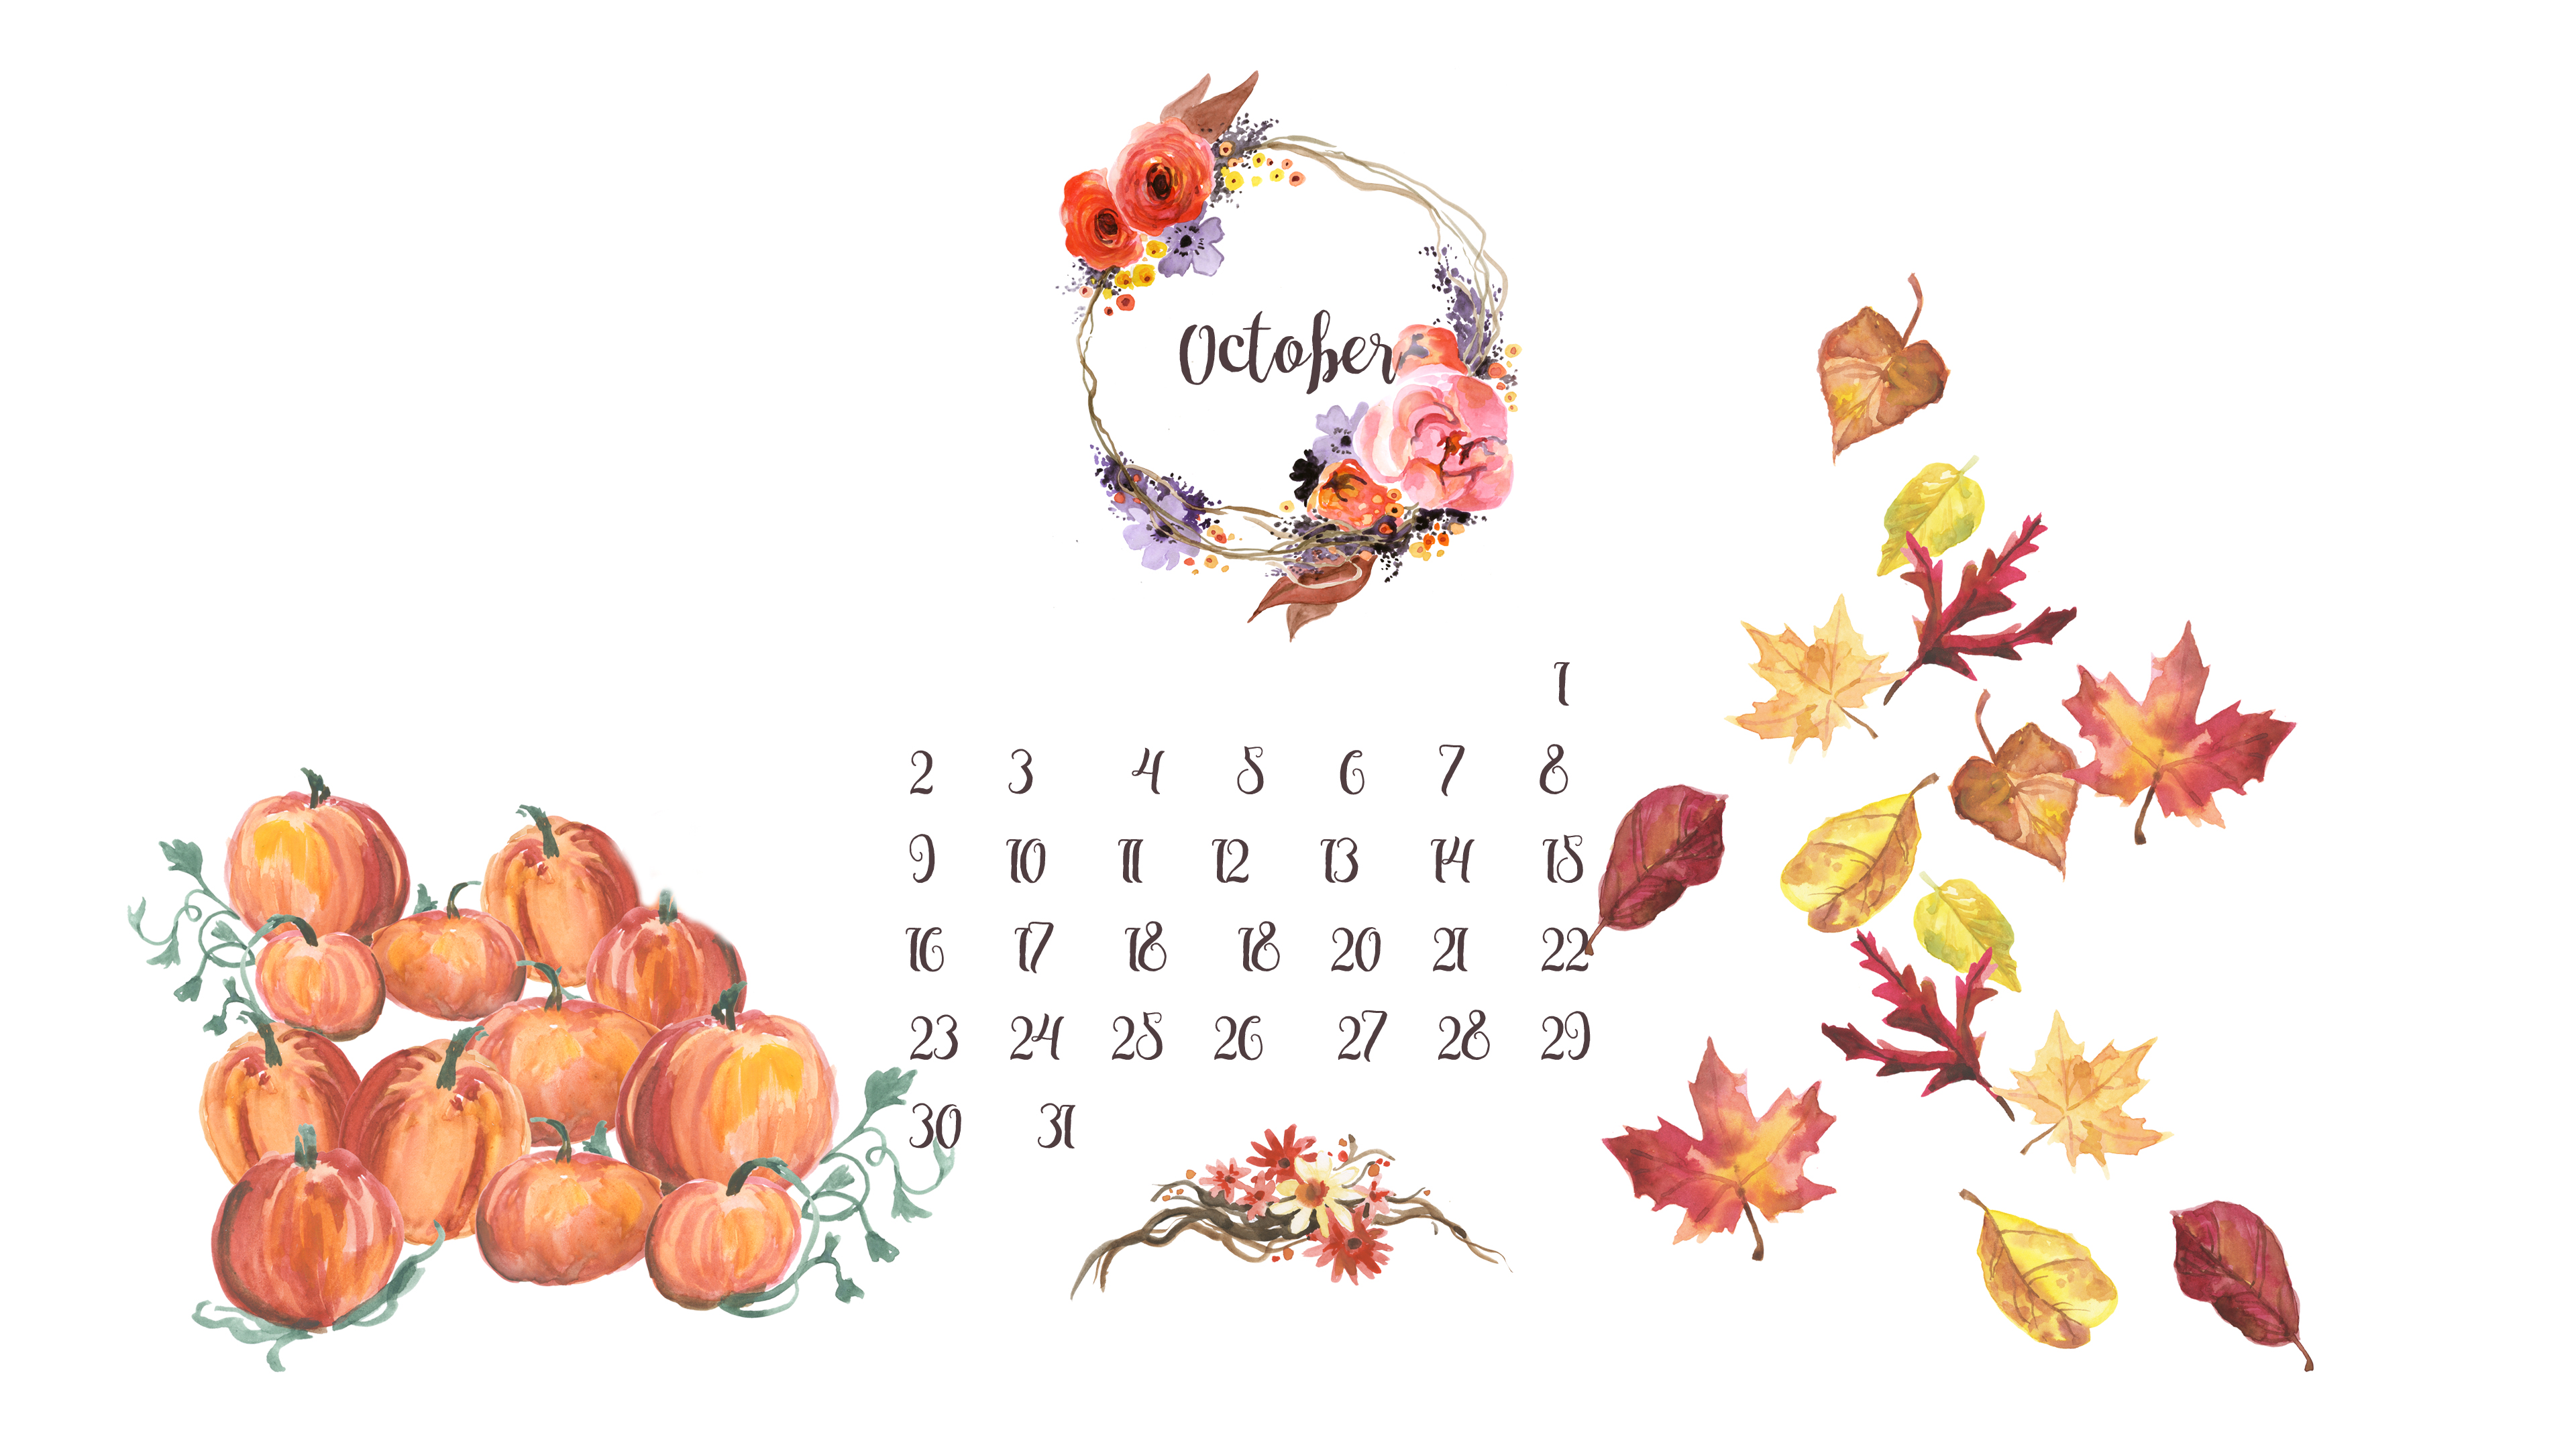 Calendar Live Wallpaper : Free desktop calendar background october live love